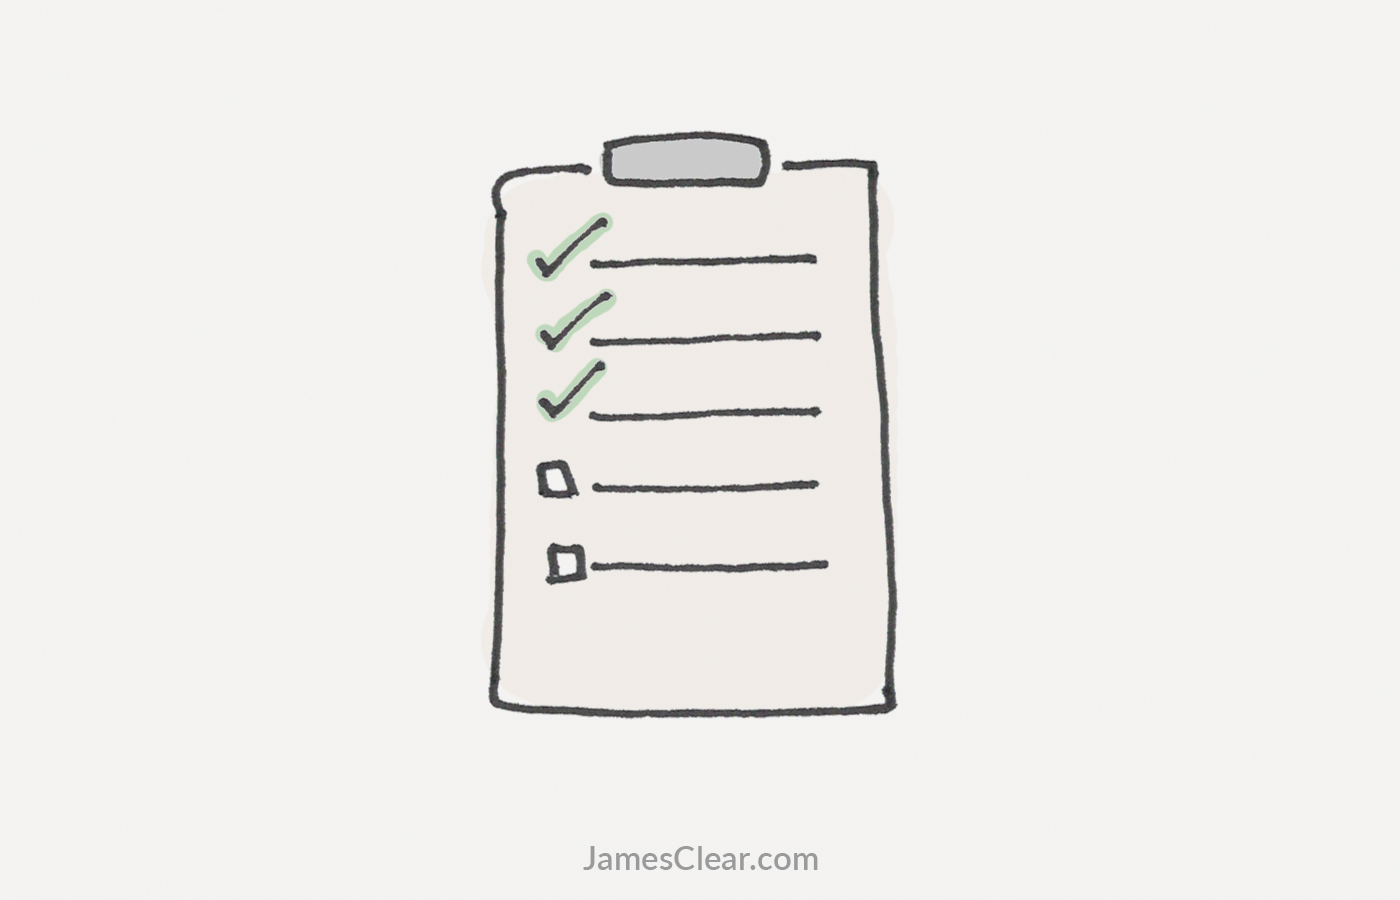 Checklist Solutions: Do More of What Already Works